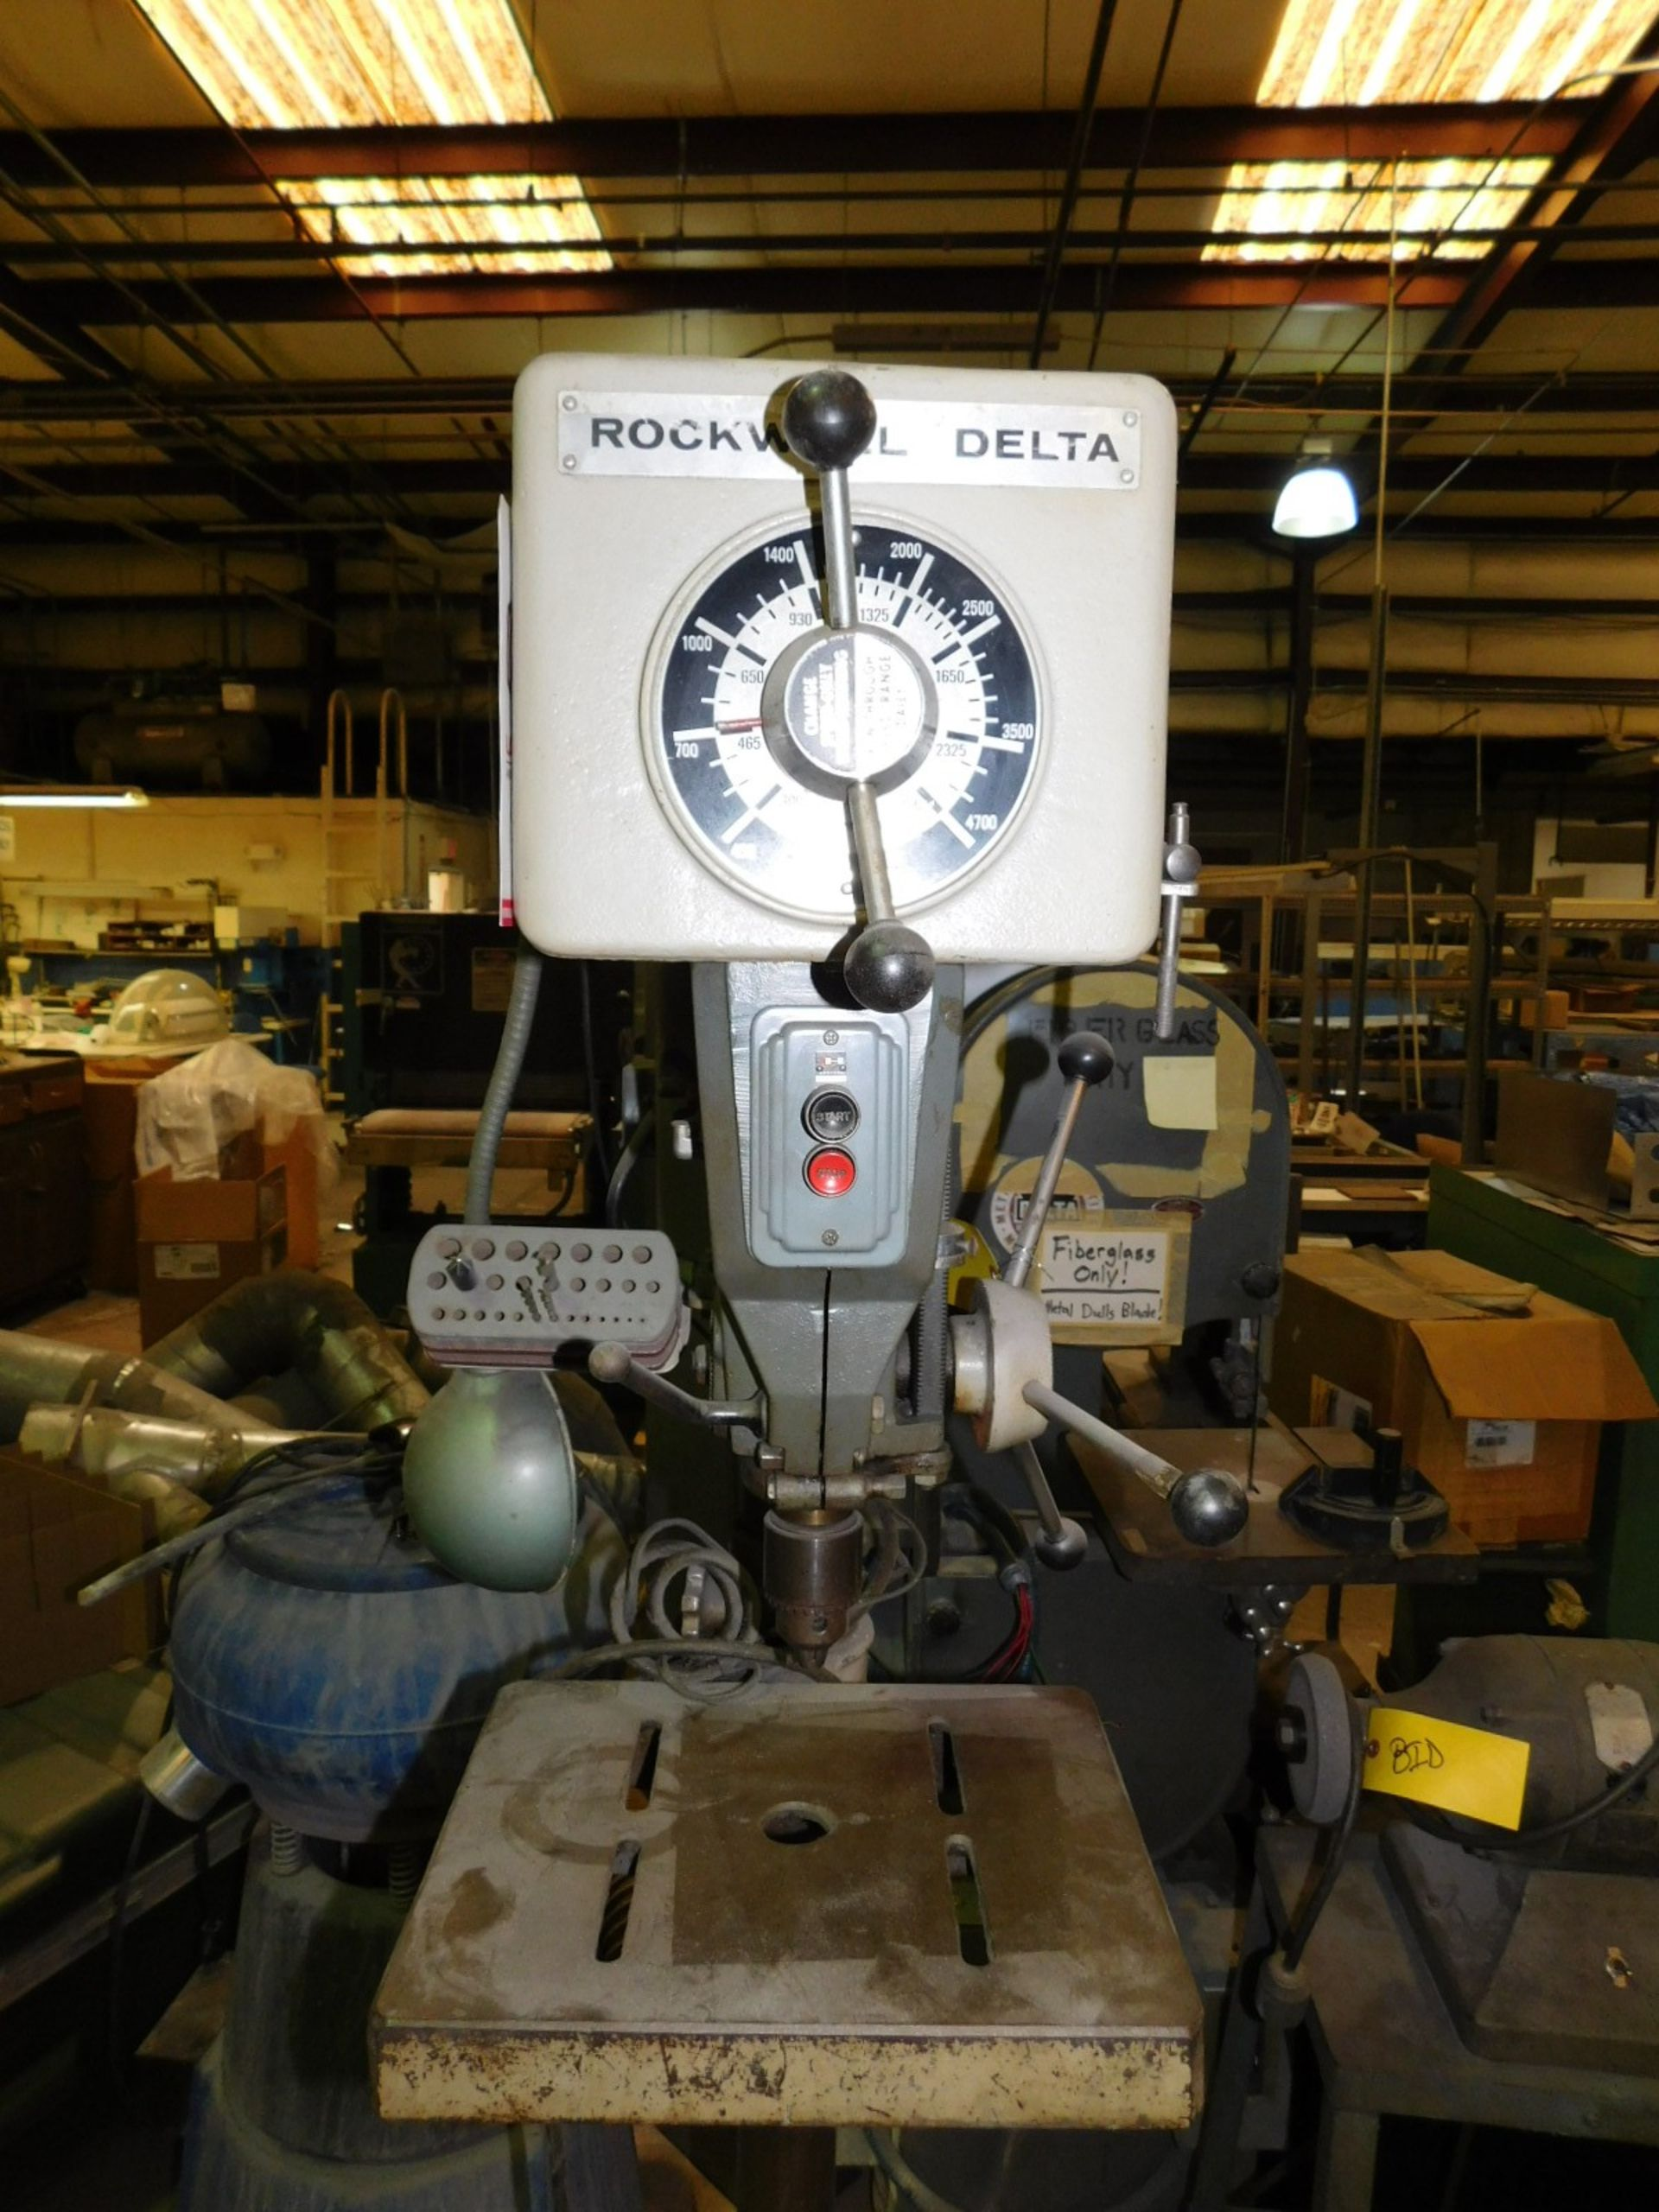 "Lot 32 - ROCKWELL DELTA 15"" DRILL PRESS, SERIES NO. 15-655, S/N 1487628, FLOOR STAND, VARIABLE SPEED"